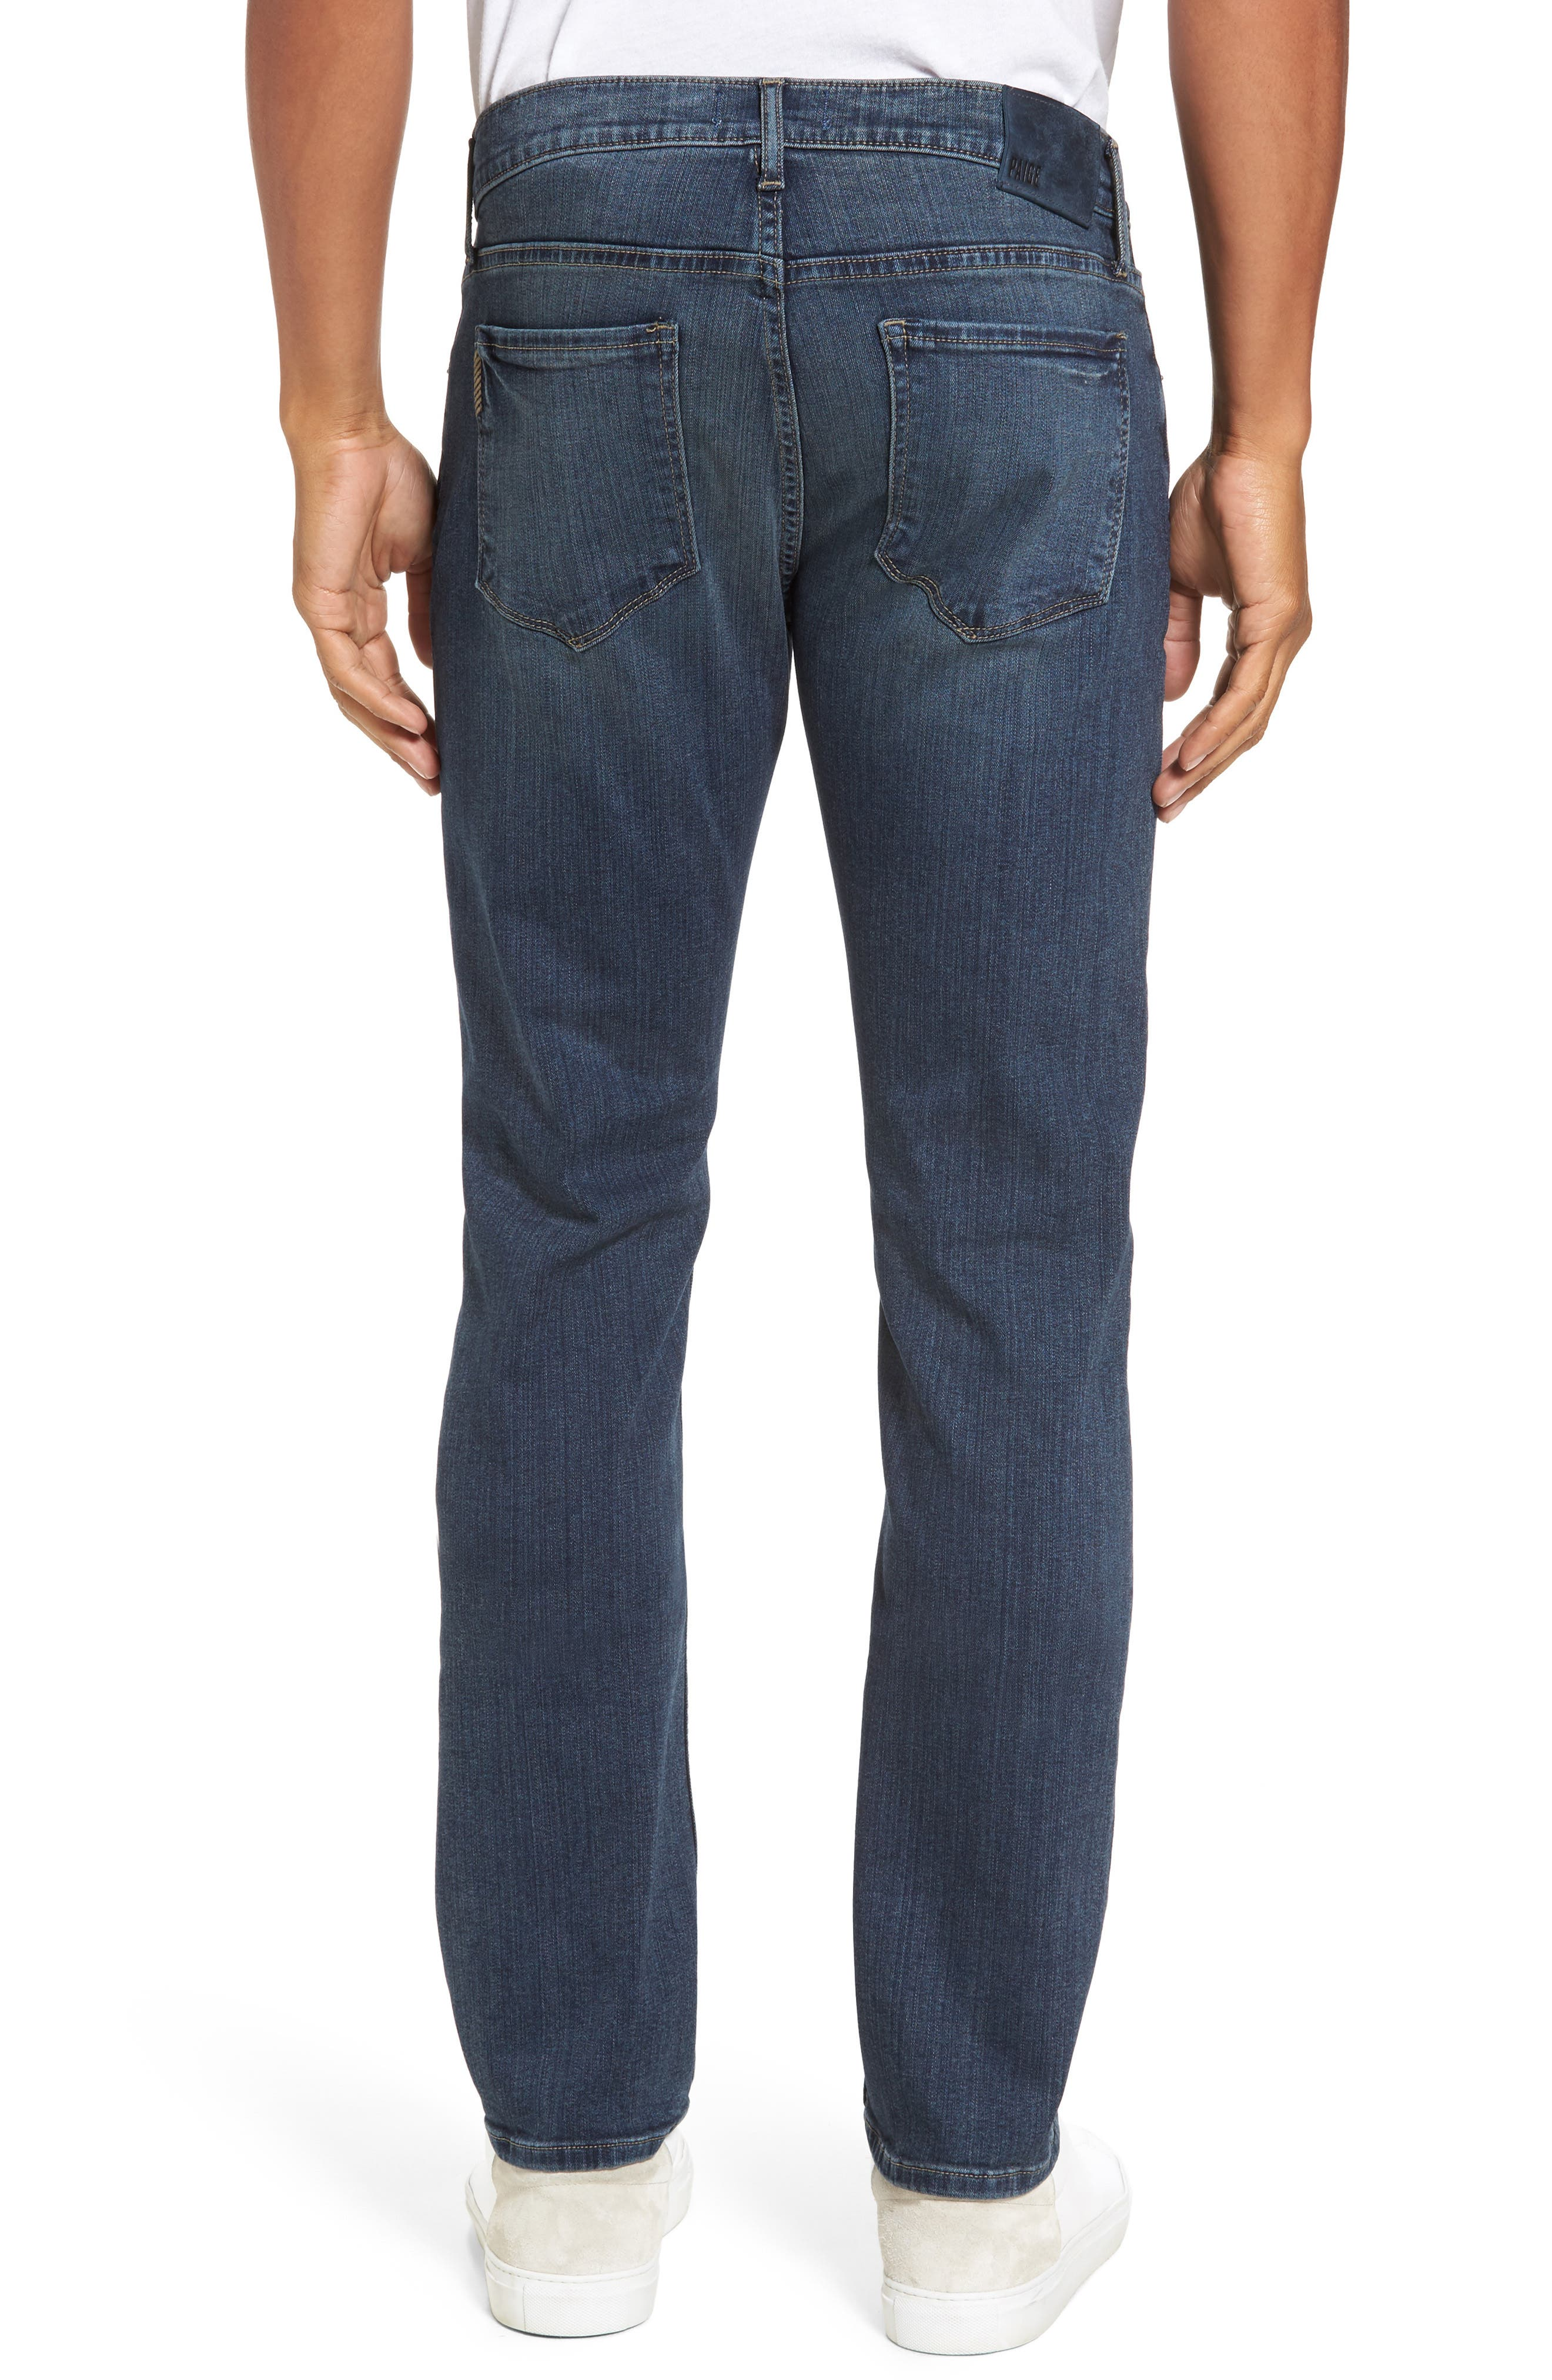 Transcend - Federal Slim Straight Leg Jeans,                             Alternate thumbnail 2, color,                             400